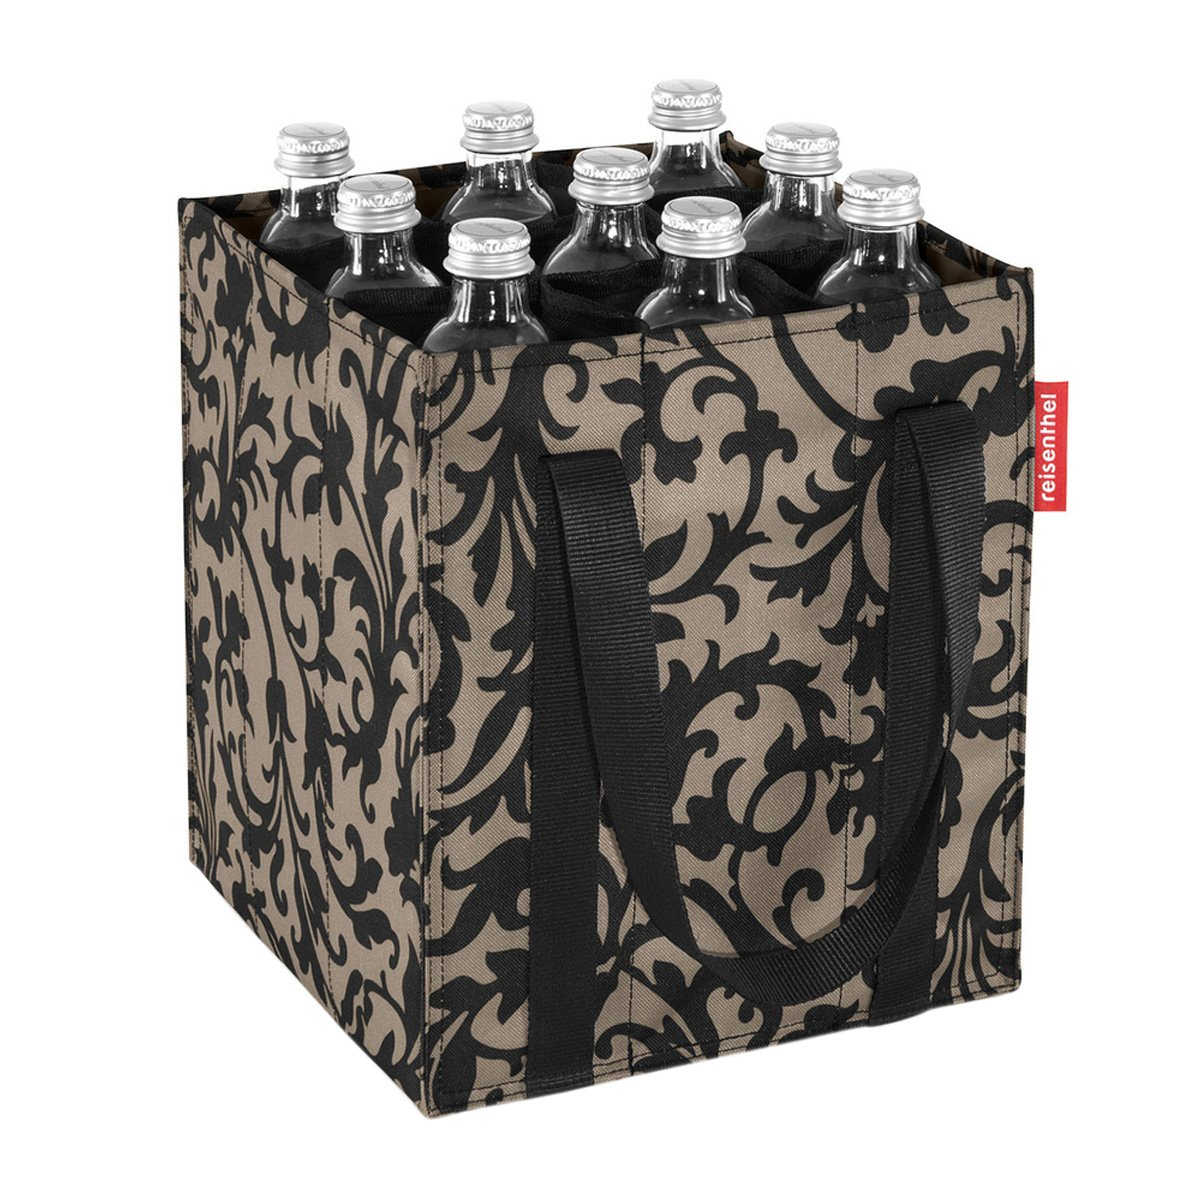 Reisenthel ZJ7009 Bottle Carrier Dots by Reisenthel